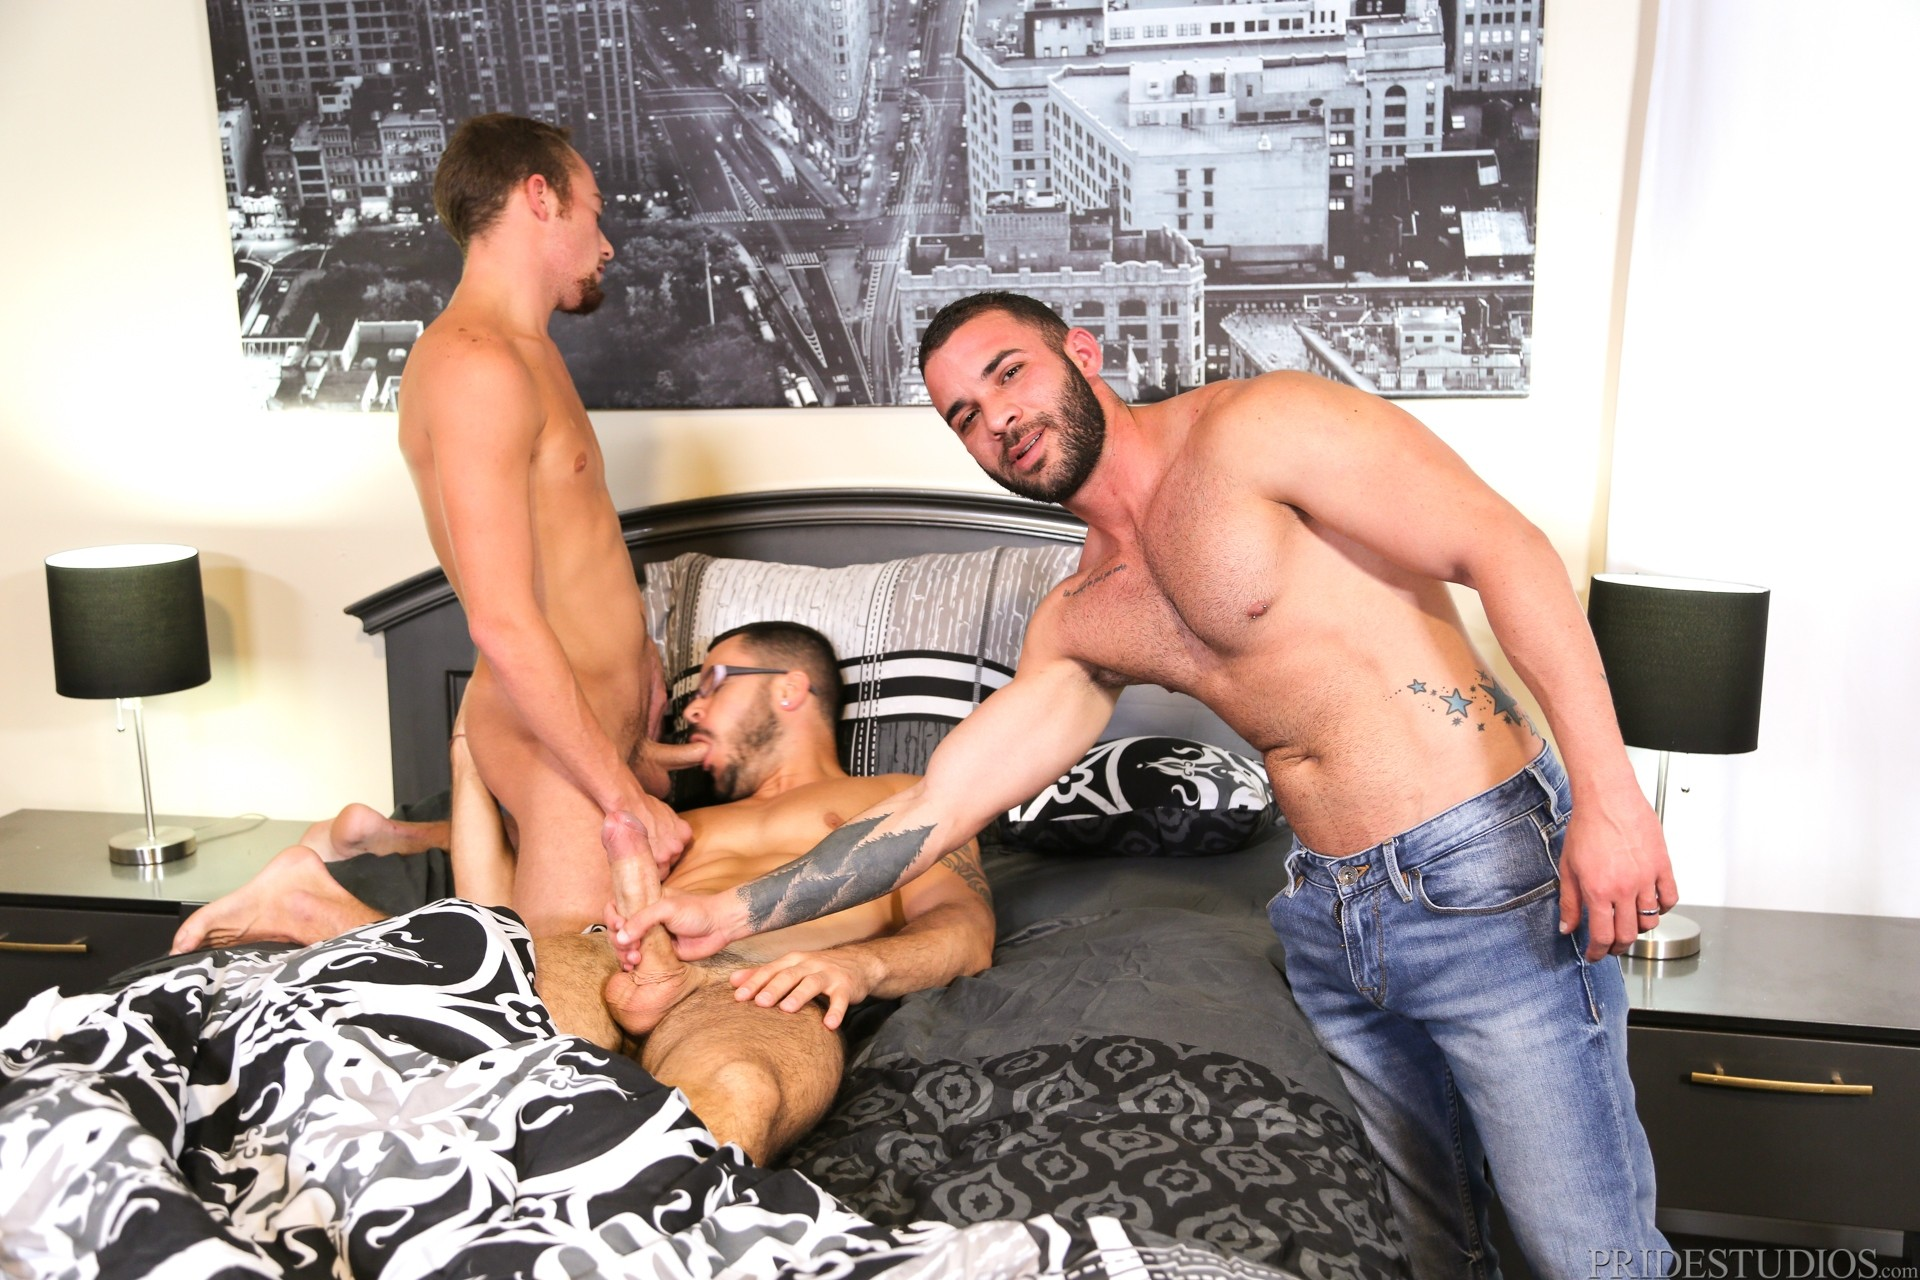 neighborhood cock part 4 from extra big dicks at justusboys